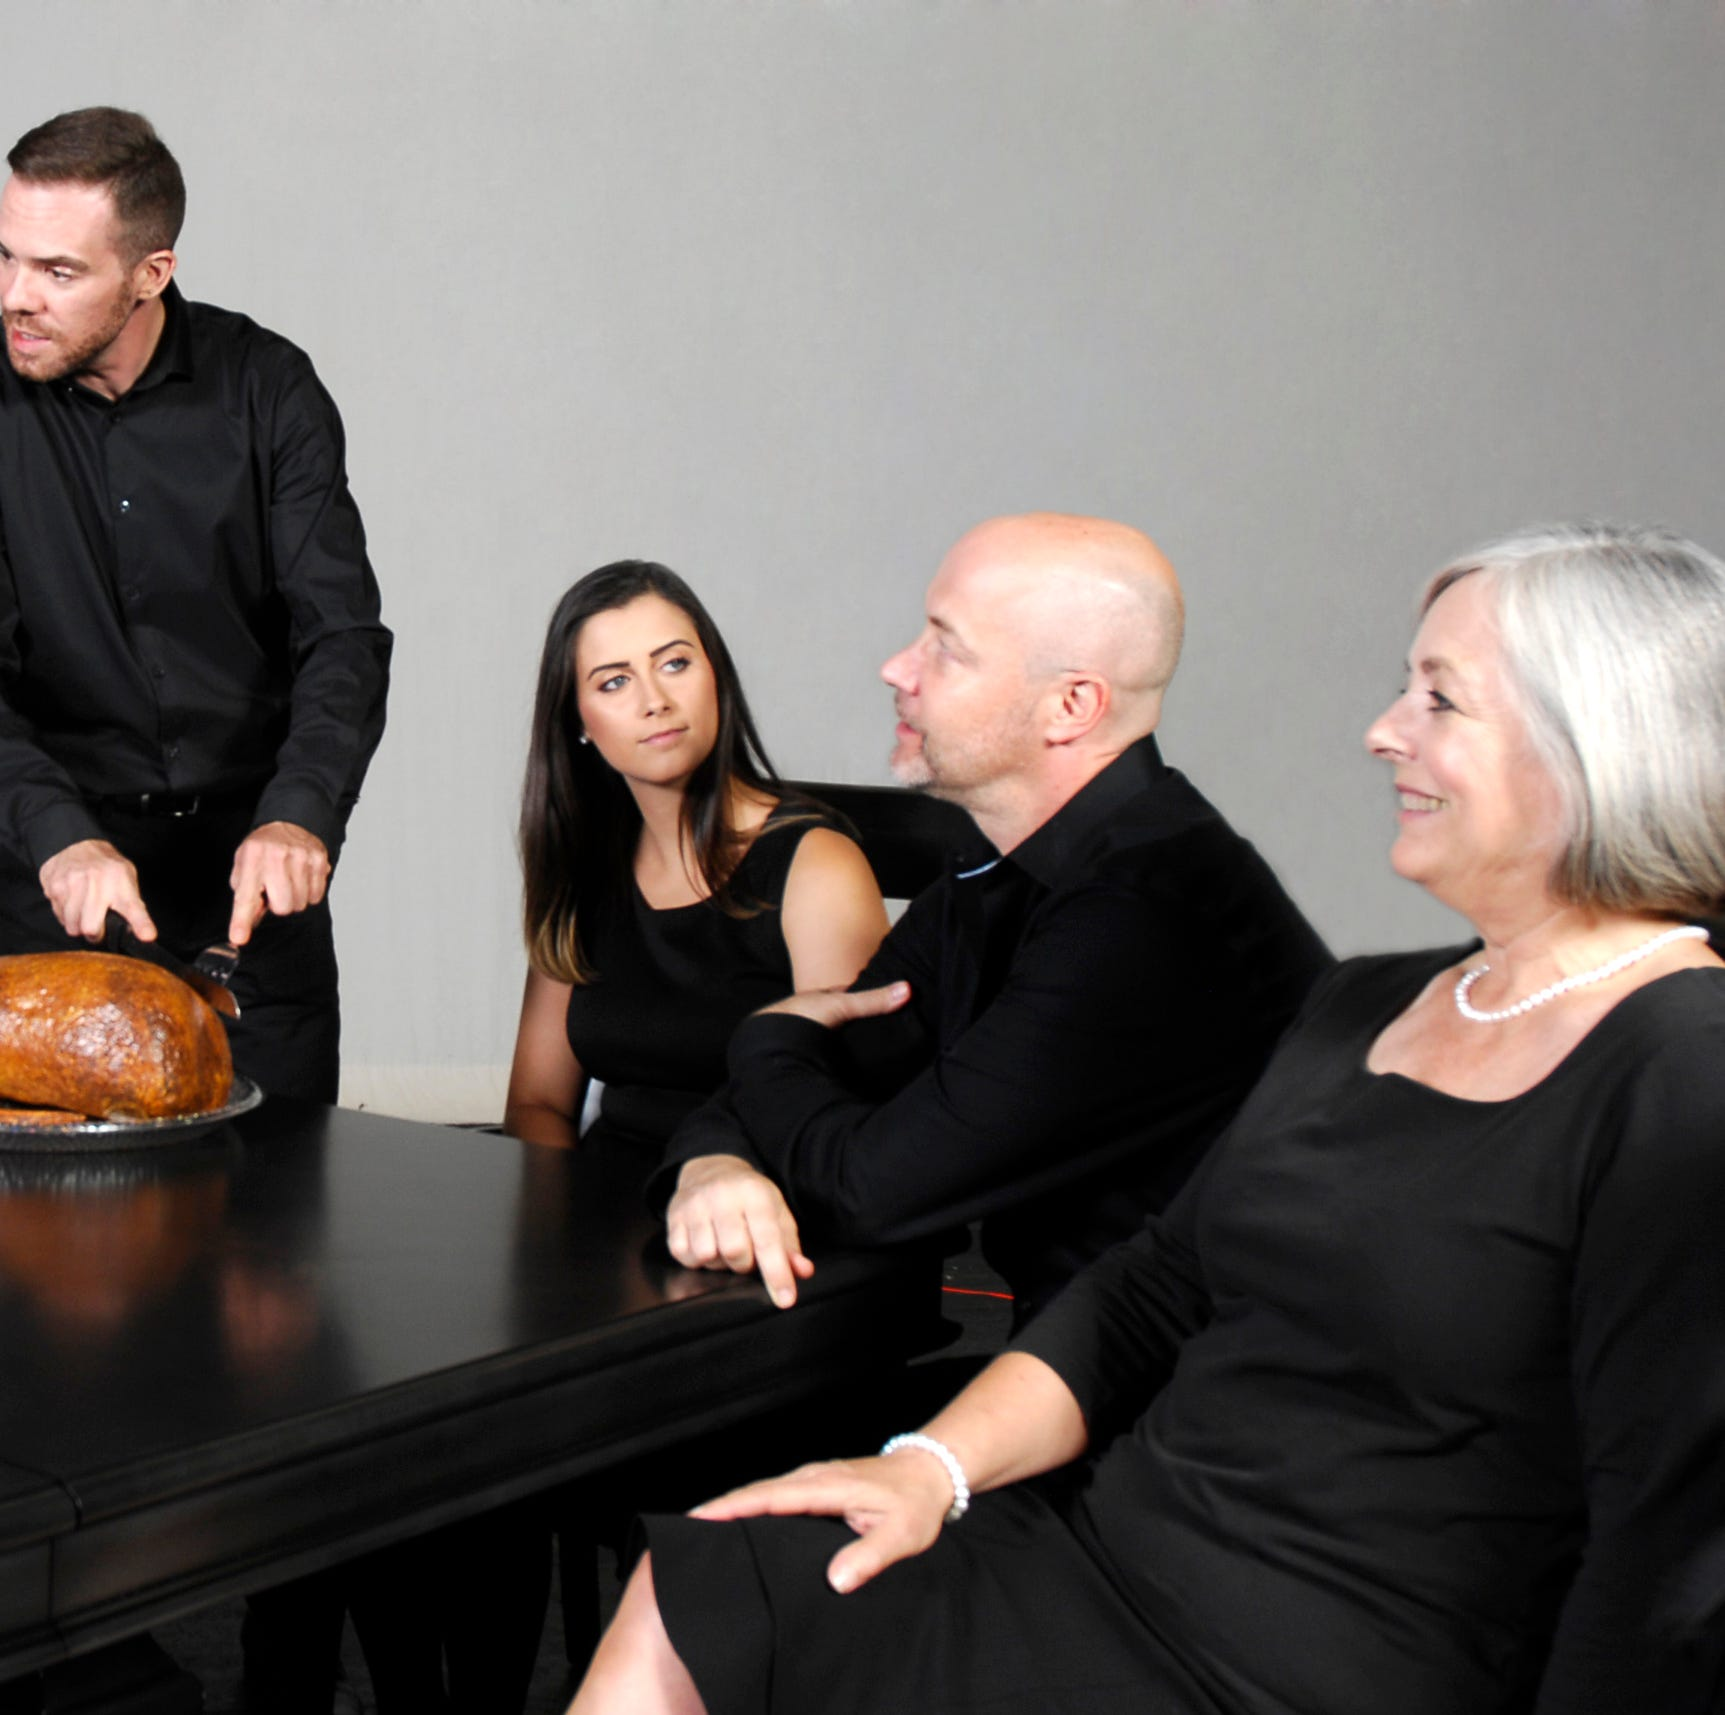 'The Dining Room', an A.R. Gurney play, is served at the Barn Theatre